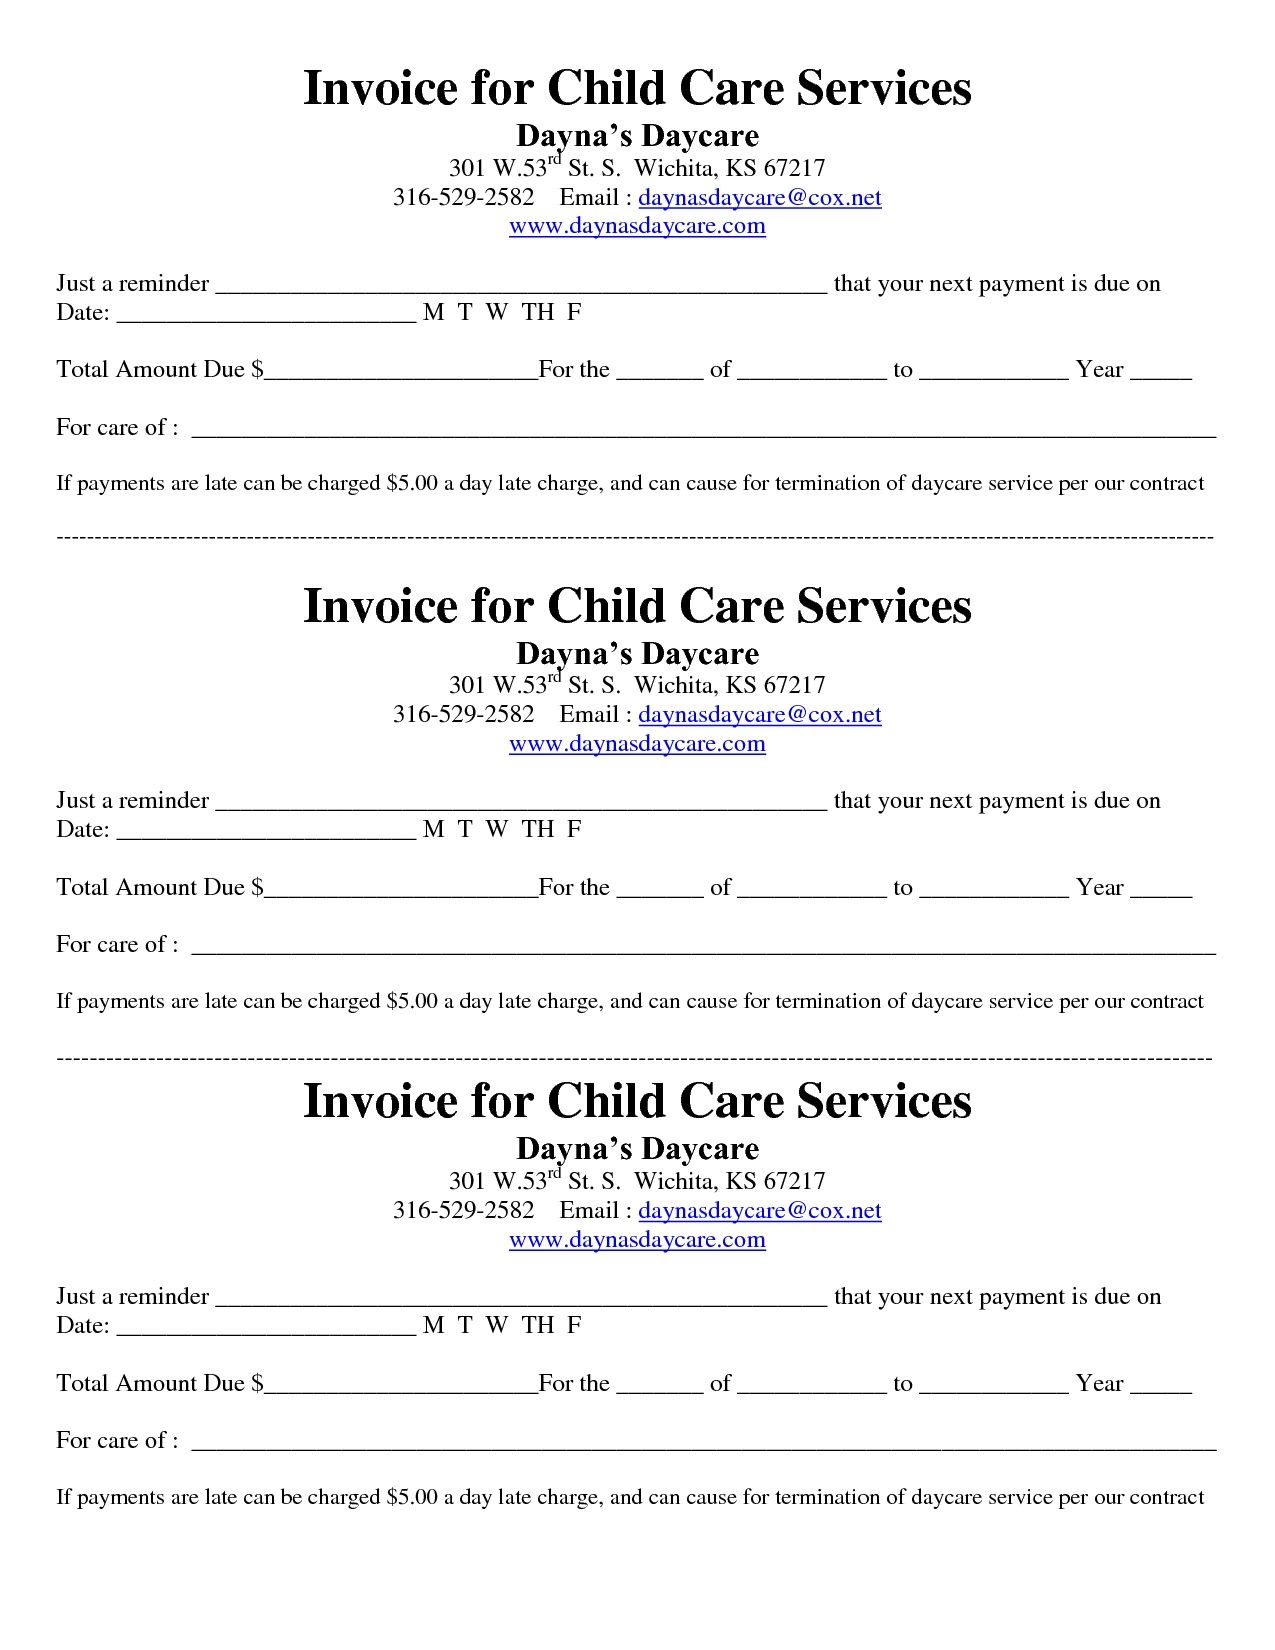 Child Care Receiptinvoice JORDI PRESCHOOL Pinterest Daycare - Babysitting invoice template